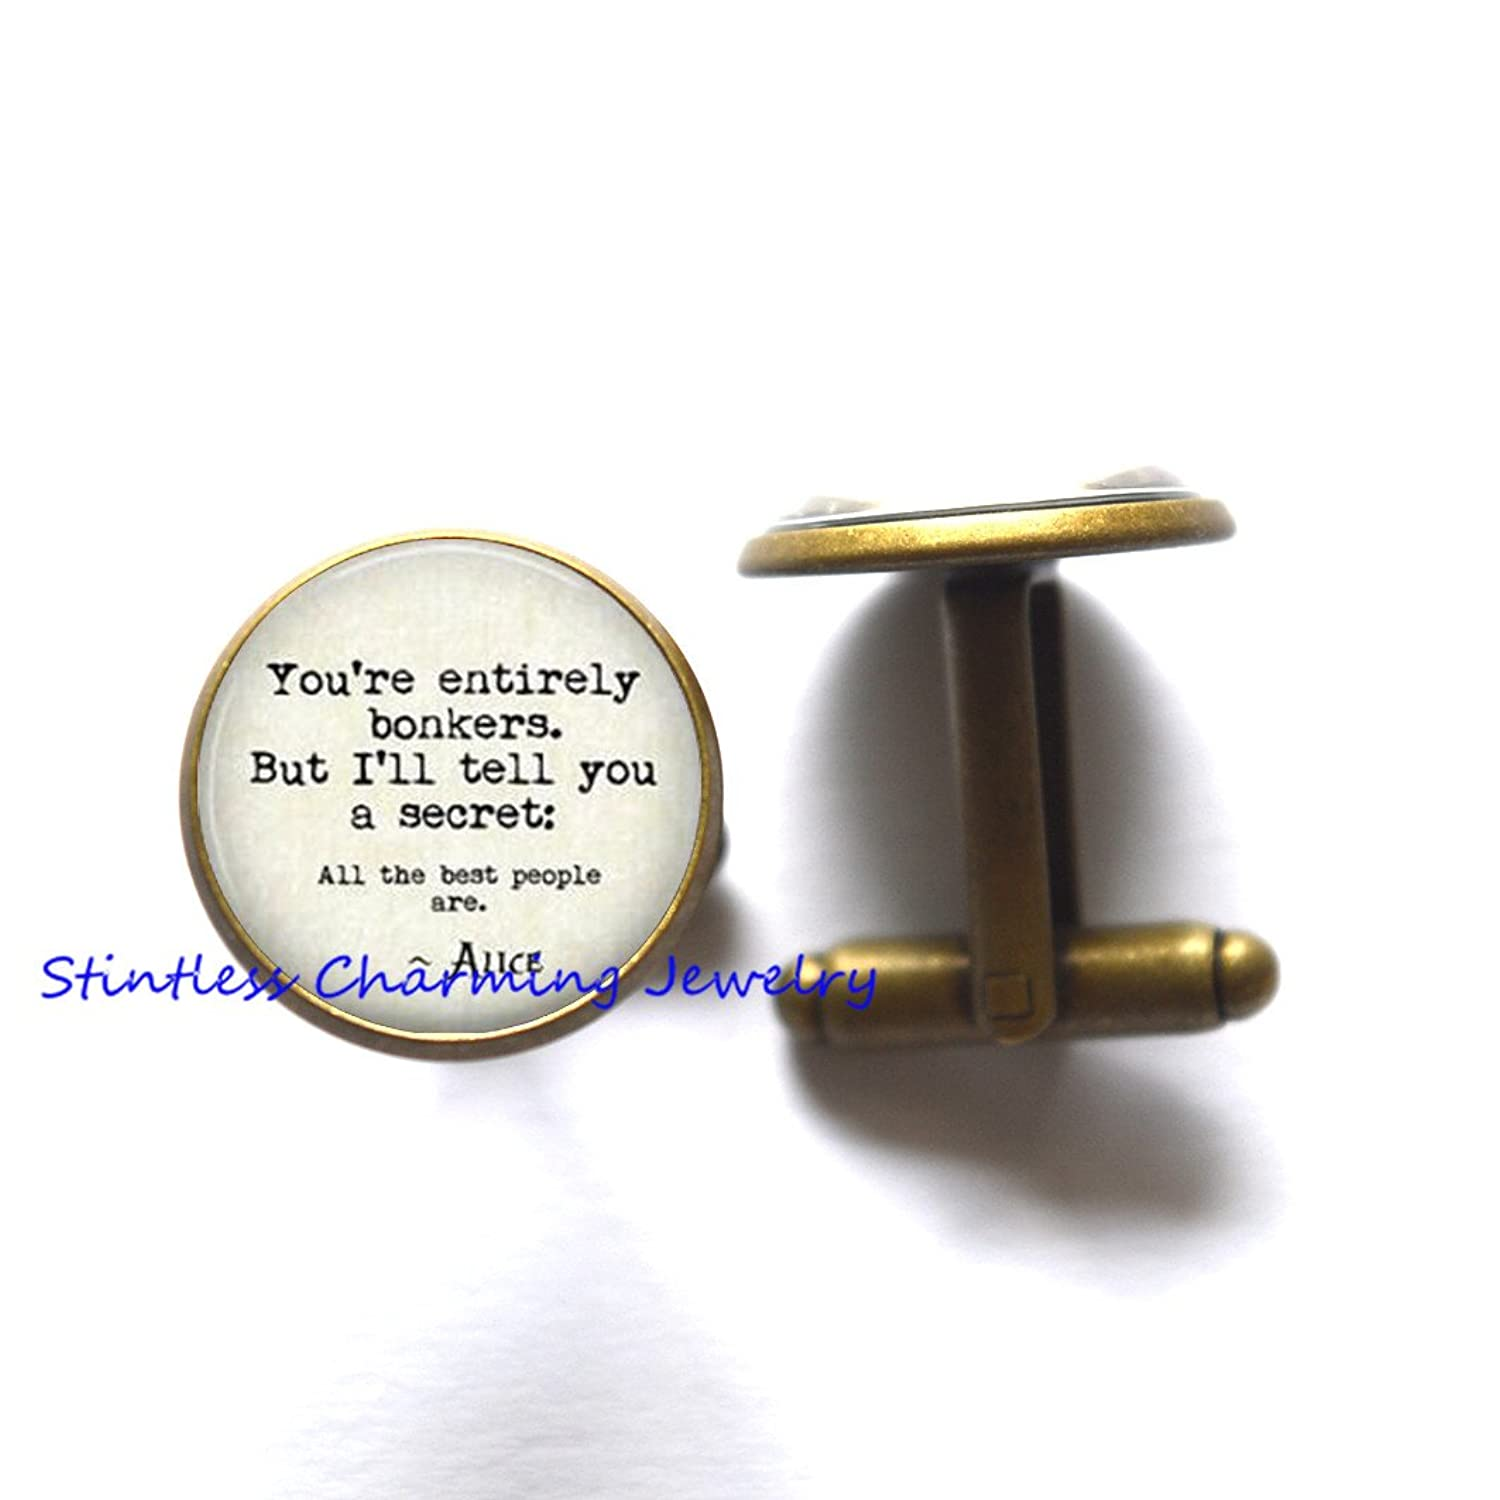 You're Entirely Bonkers Cufflinks,Quote Jewelry,book quote,quote jewelry,handmade jewelry Cufflinks, book quotes Cufflinks